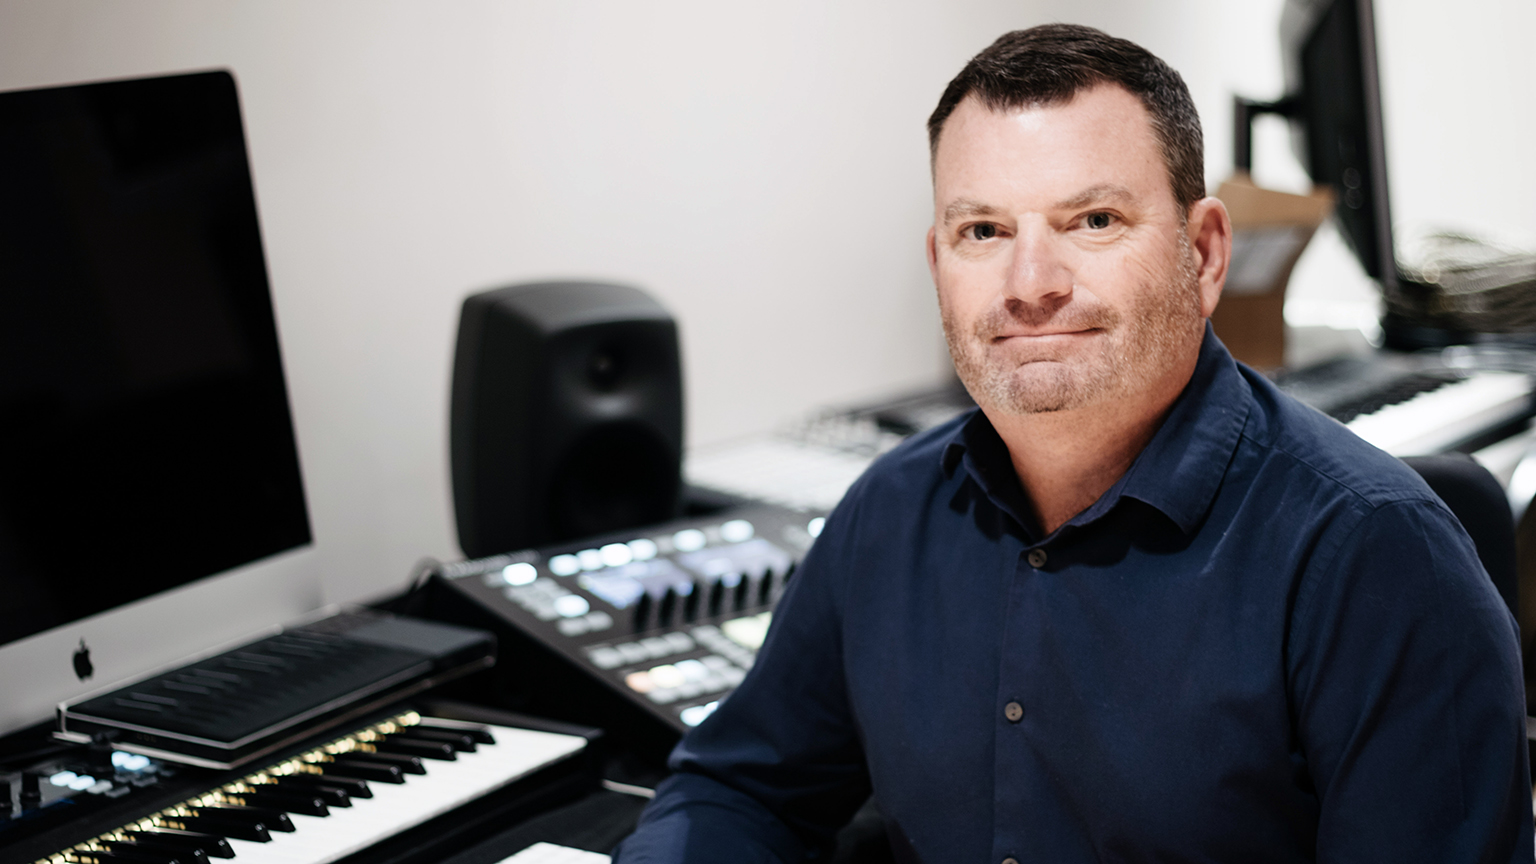 Chris Moore smiling next to a computer and electronic piano.